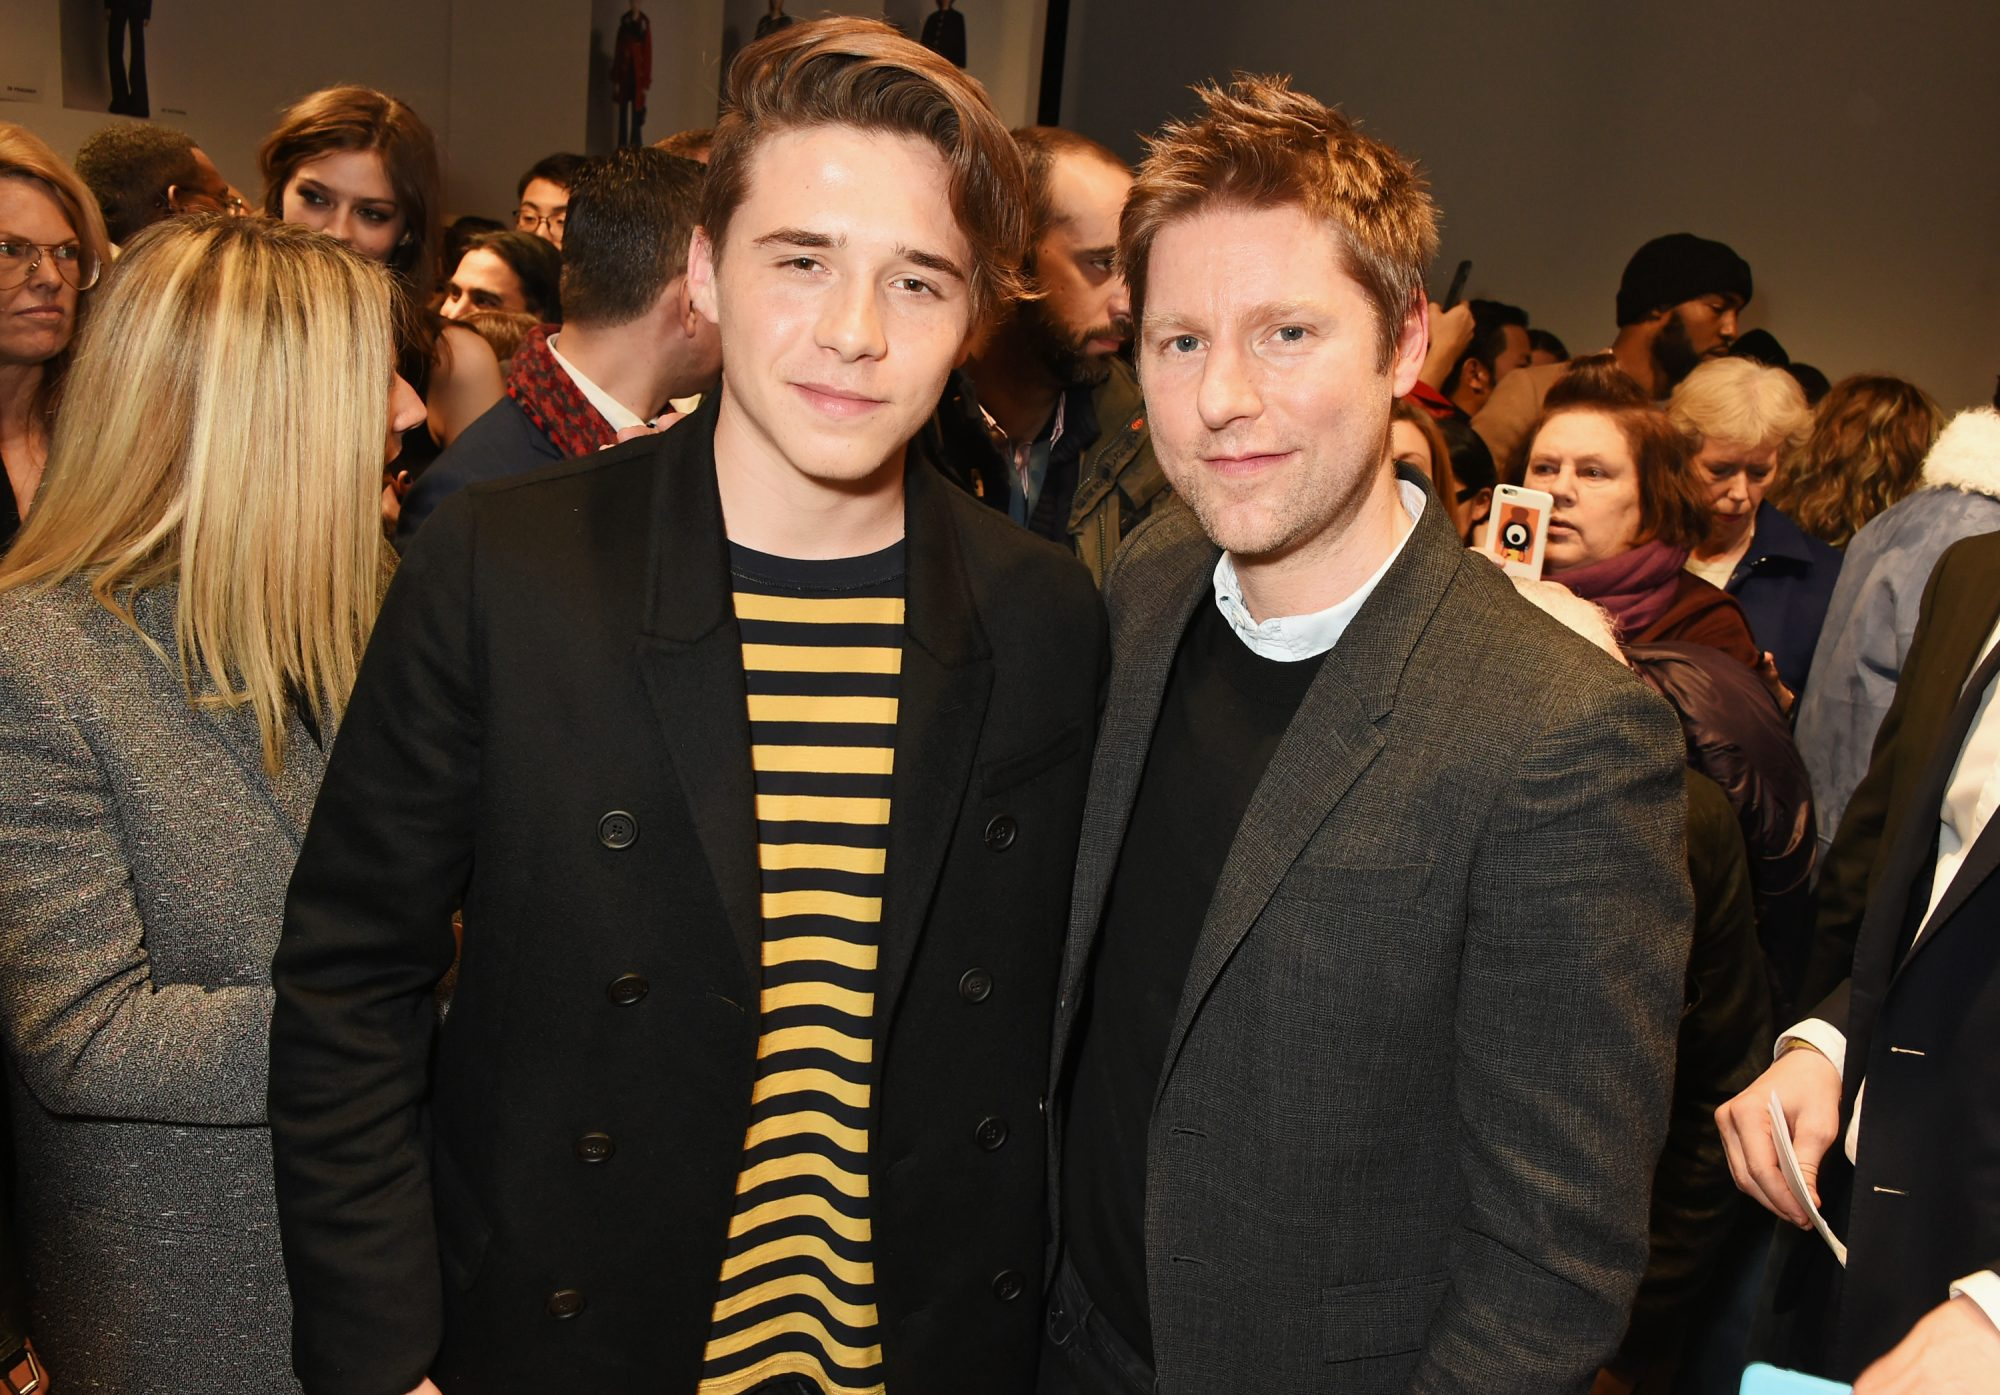 picture-of-christopher-bailey-and-brooklyn-beckham-photo.jpg